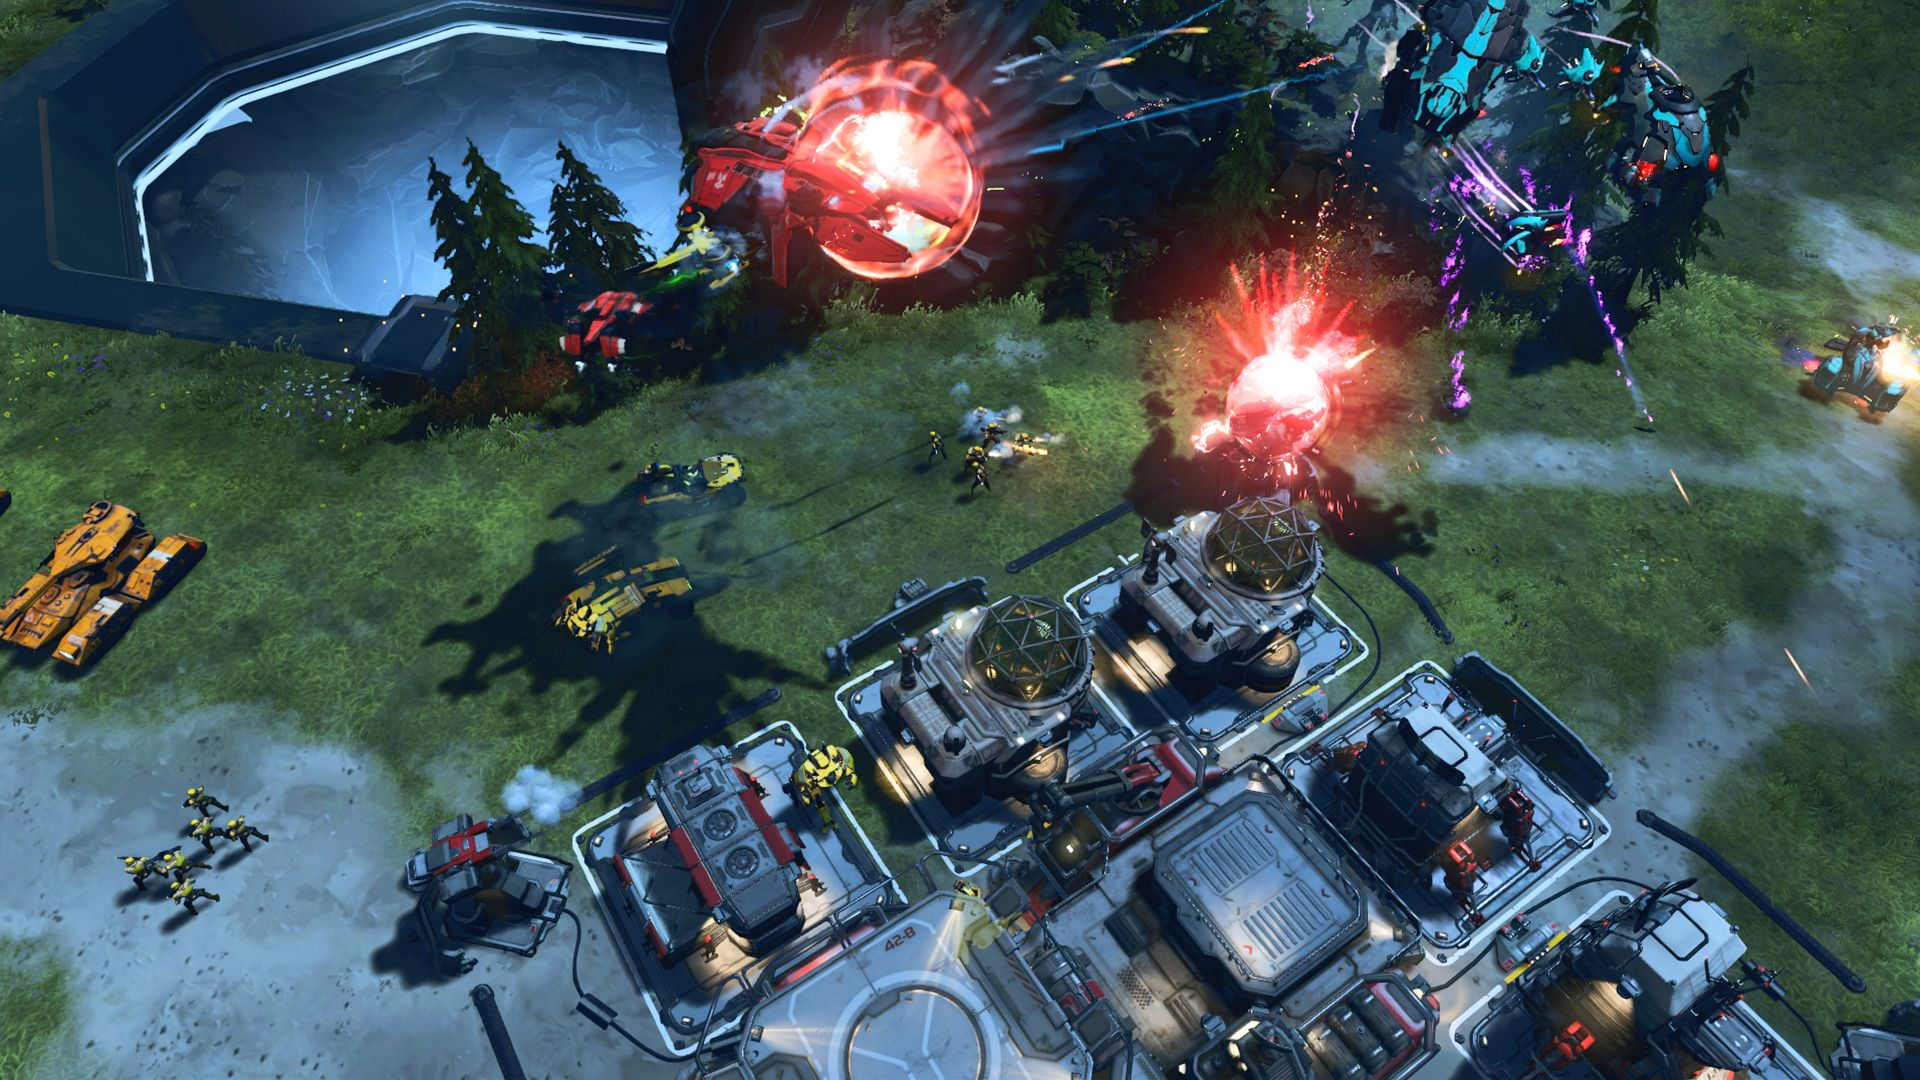 Halo Wars 2 Gets Massive 9 2GB Update With Fixes, Buffs and